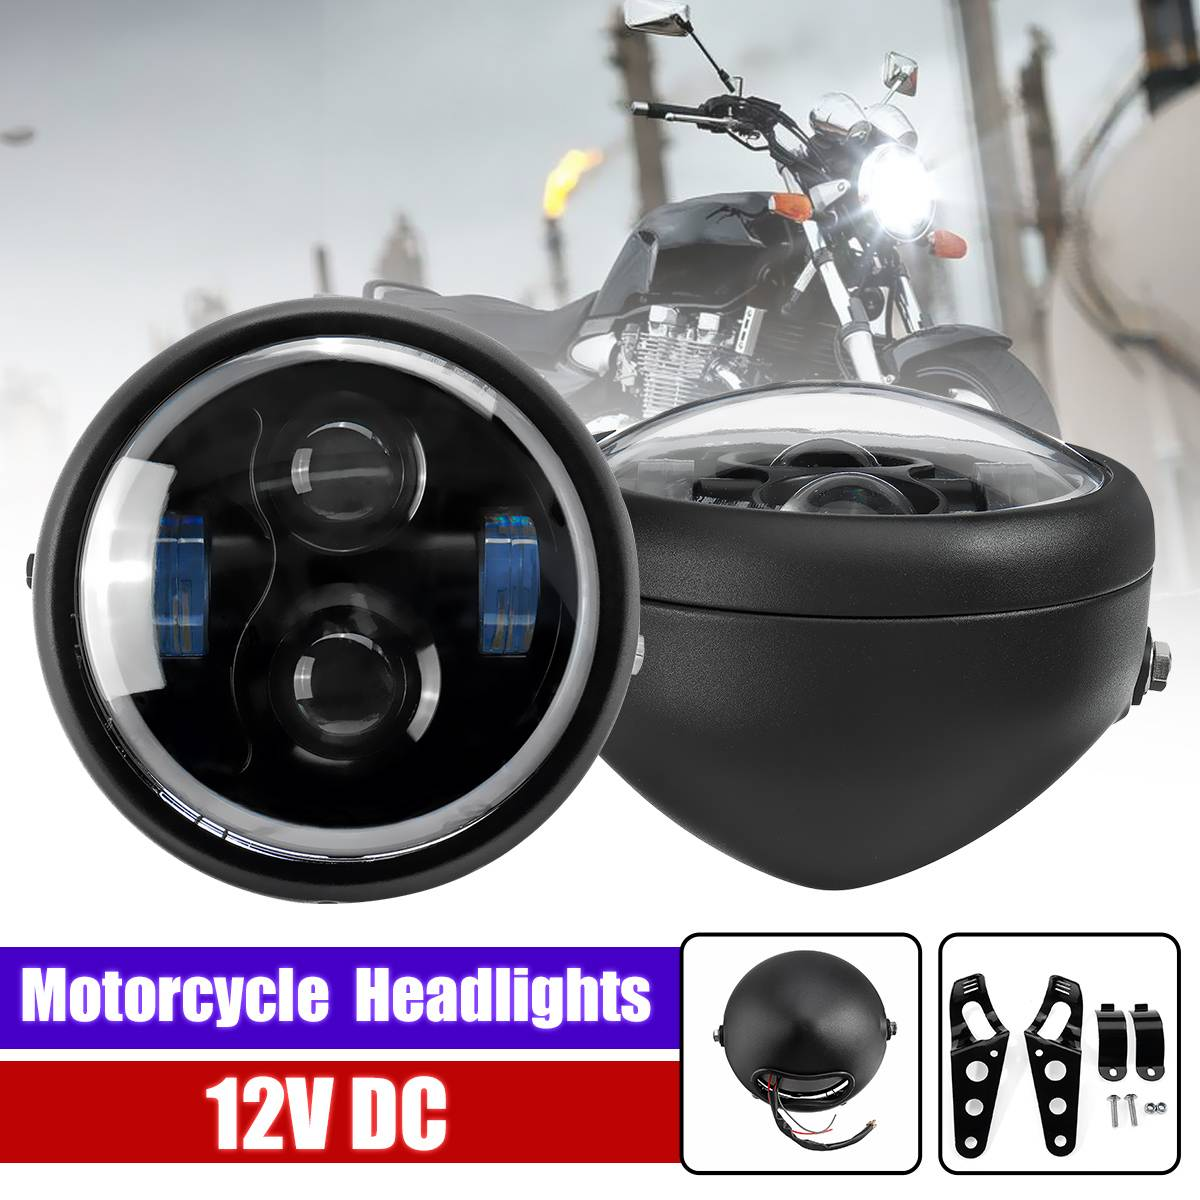 7 Inch LED Projection Motorcycle Headlight Lamp With Brackets Ring Headlight Lamp Universal Front Light For Harley Head Light